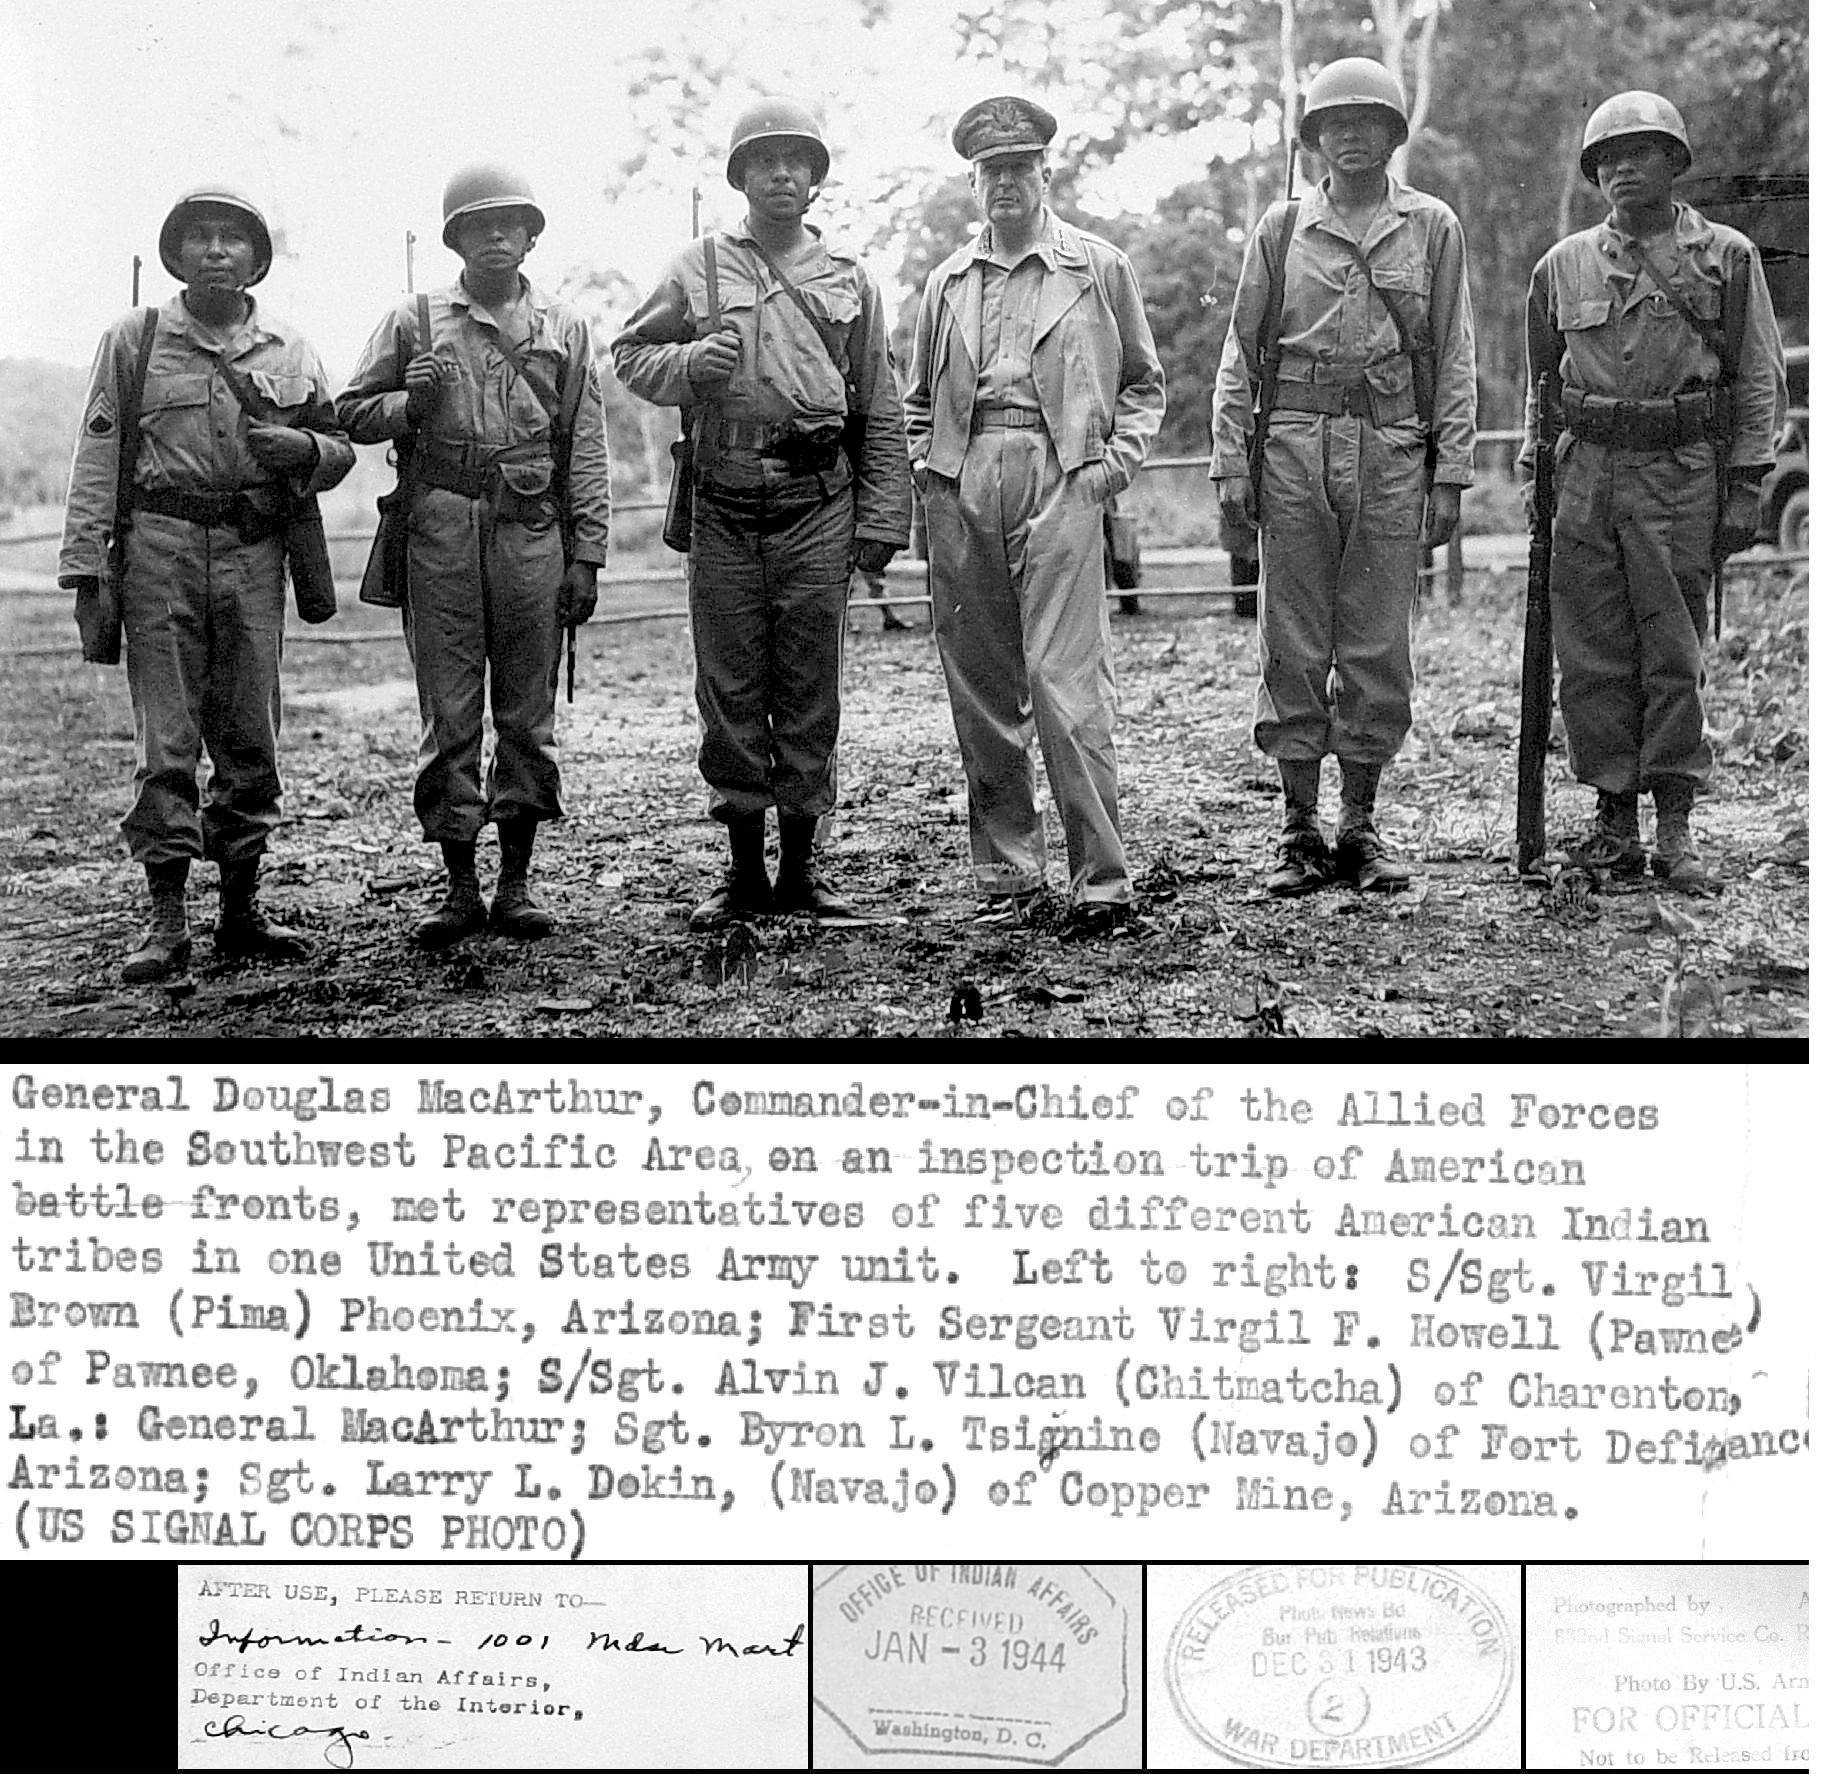 General_douglas_macarthur_meets_american_indian_troops_wwii_military_pacific_navajo_pima_island_hopping